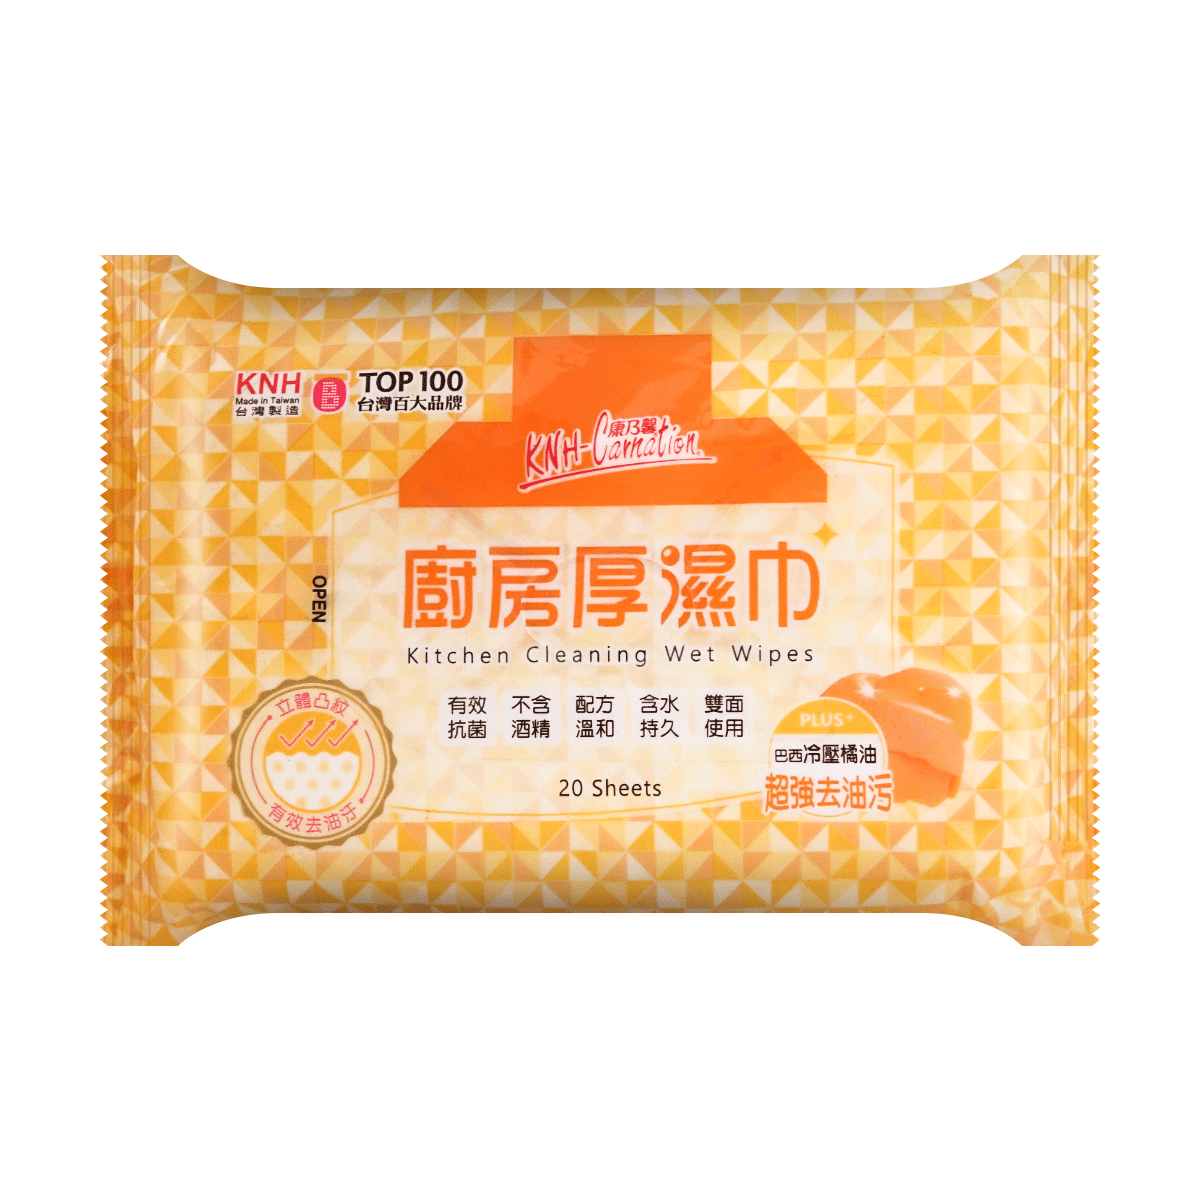 Yamibuy.com:Customer reviews:Carnation Kitchen Cleaning Wet Wipes 20 Sheets